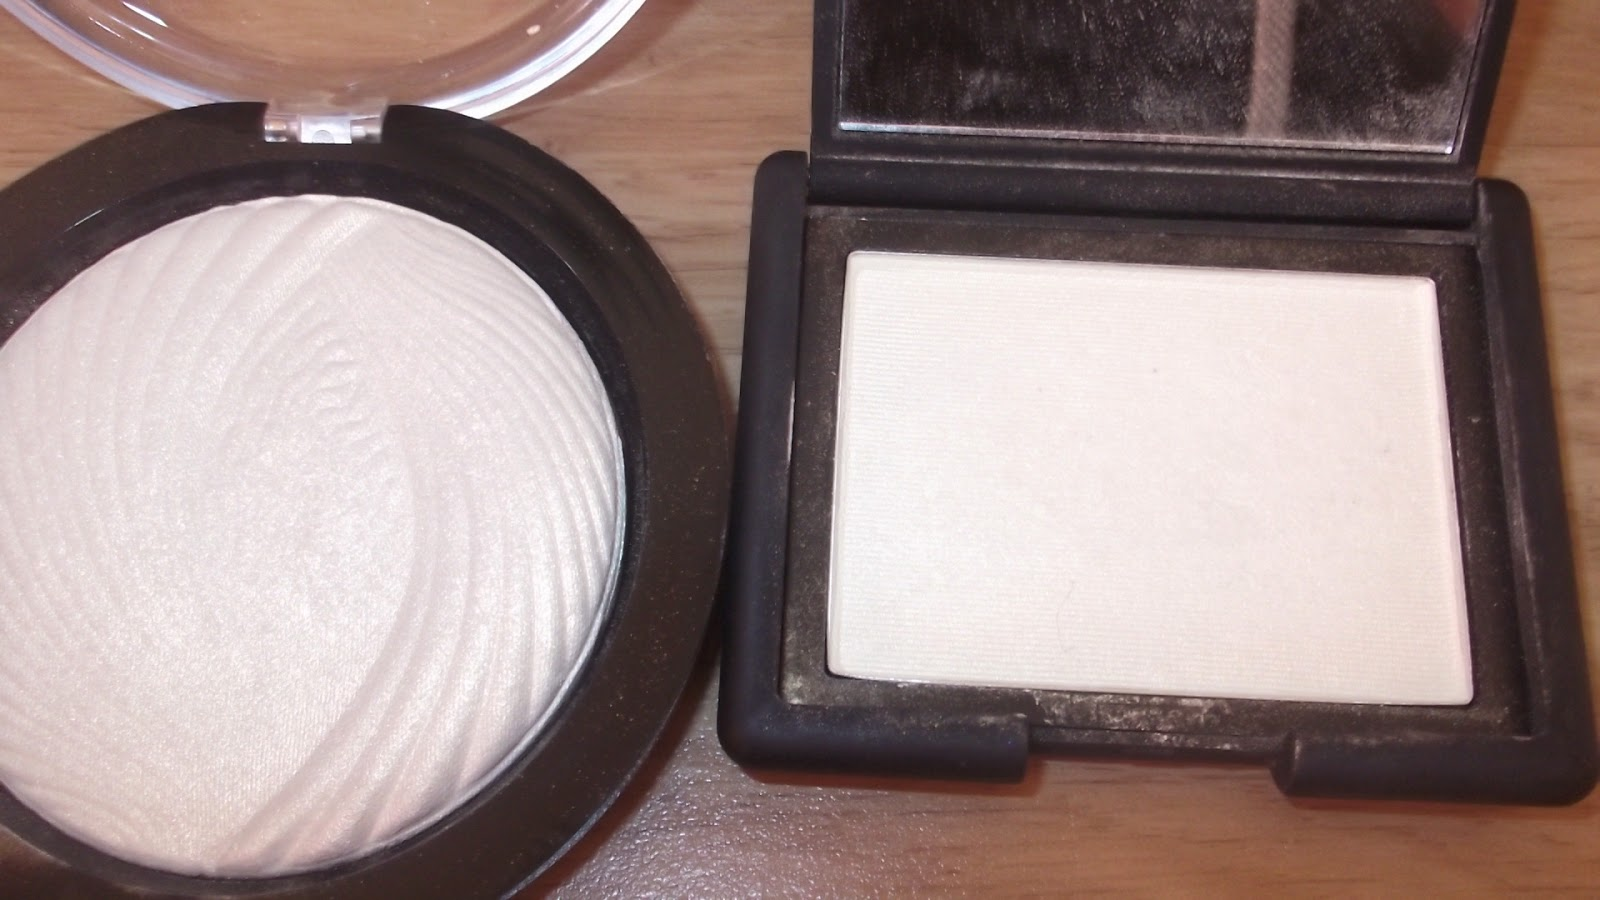 Luscious Lass 40's: Nars Albatros dupe featuring Make up Revolution